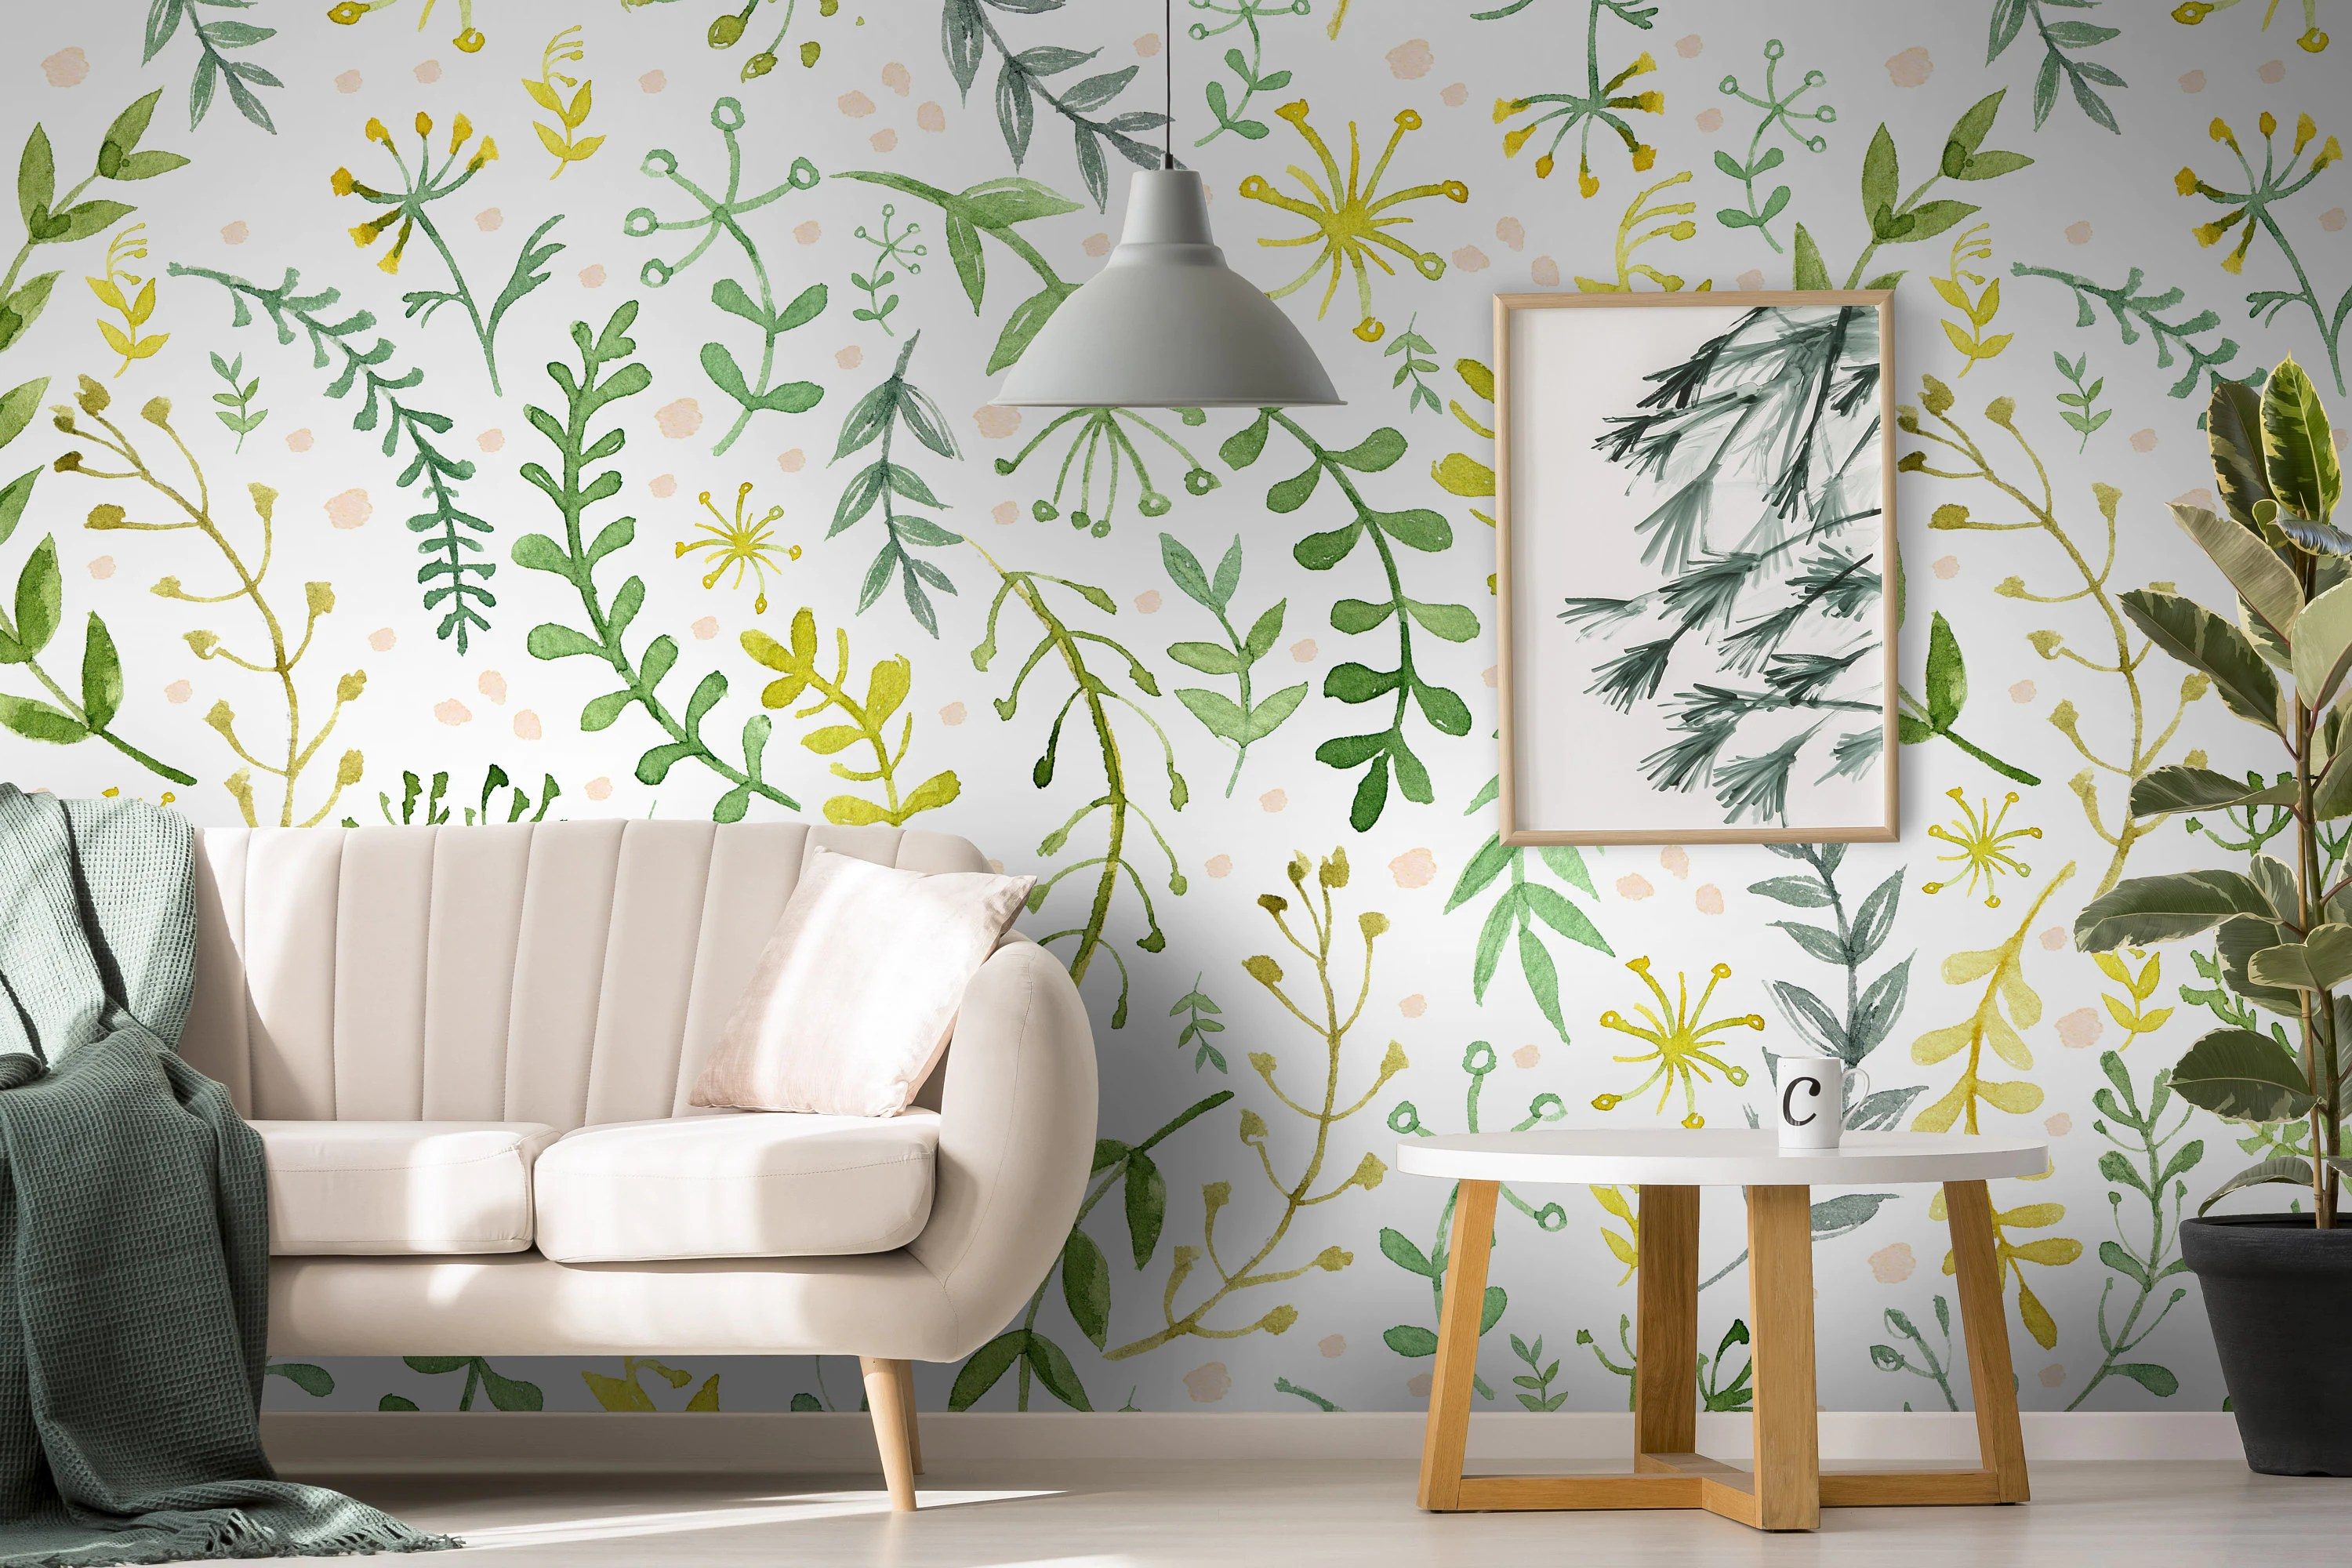 Removable Wallpaper Green Twigs Wallpaper Self Adhesive Etsy